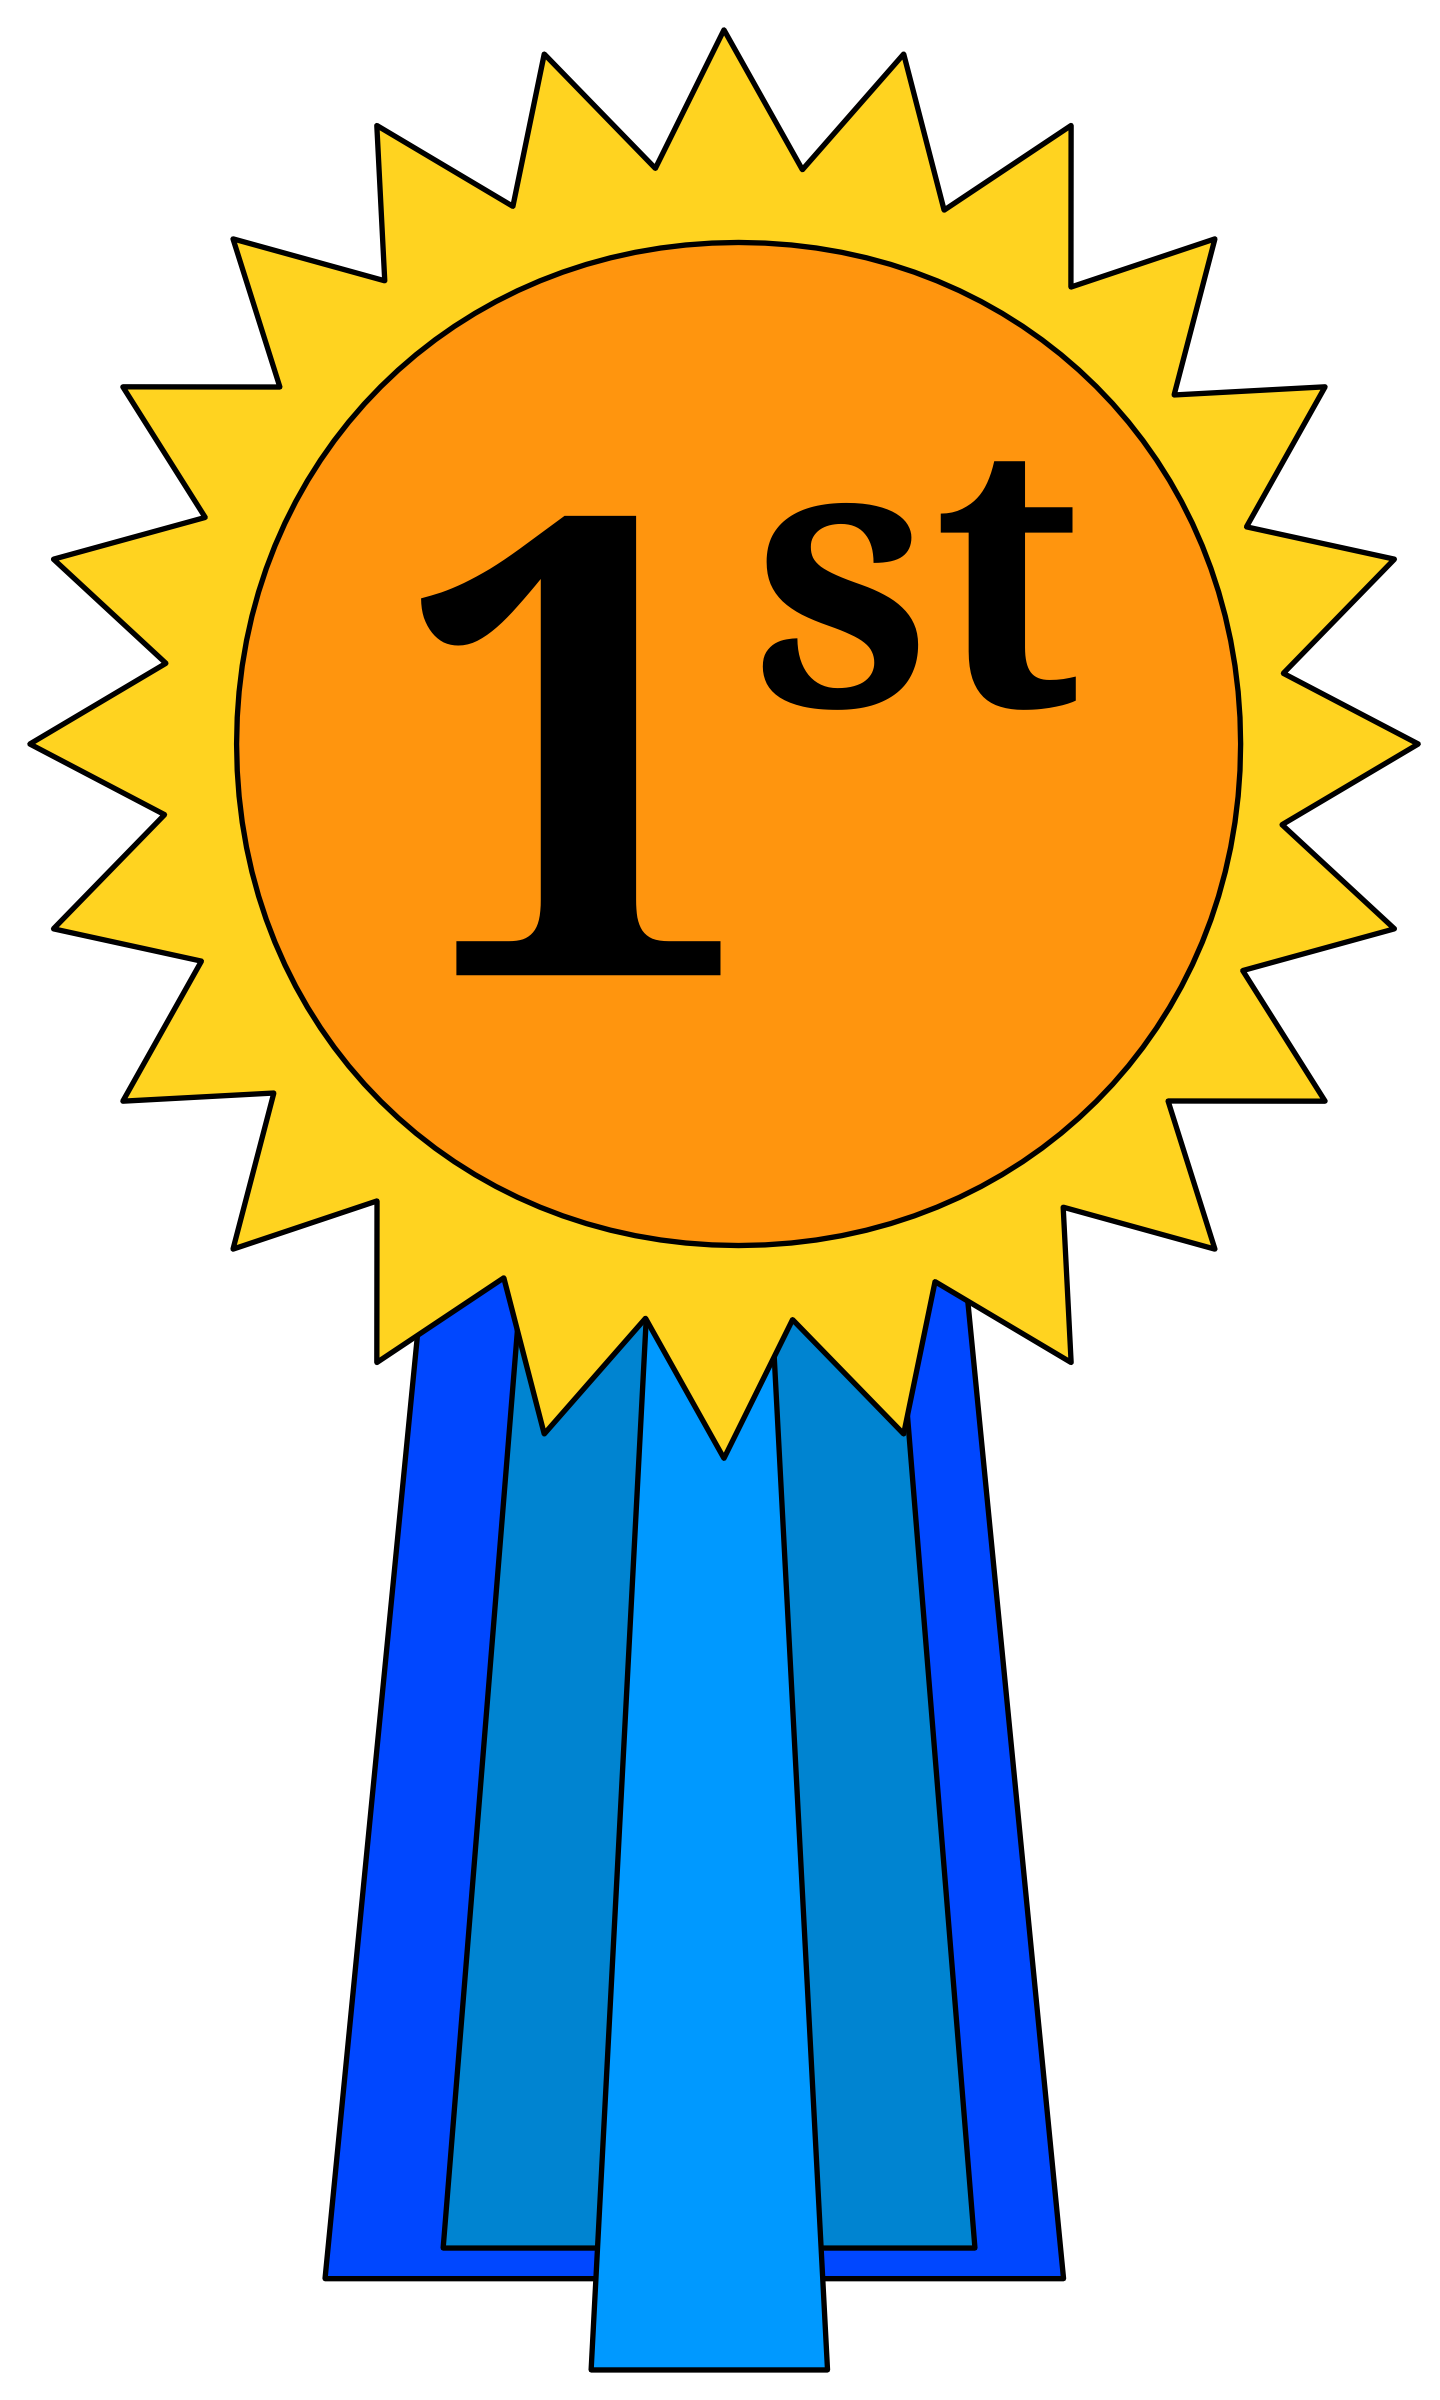 2nd place award ribbon clipart clip library library 2nd Place Ribbon Award Clipart | Clipart Panda - Free Clipart Images clip library library